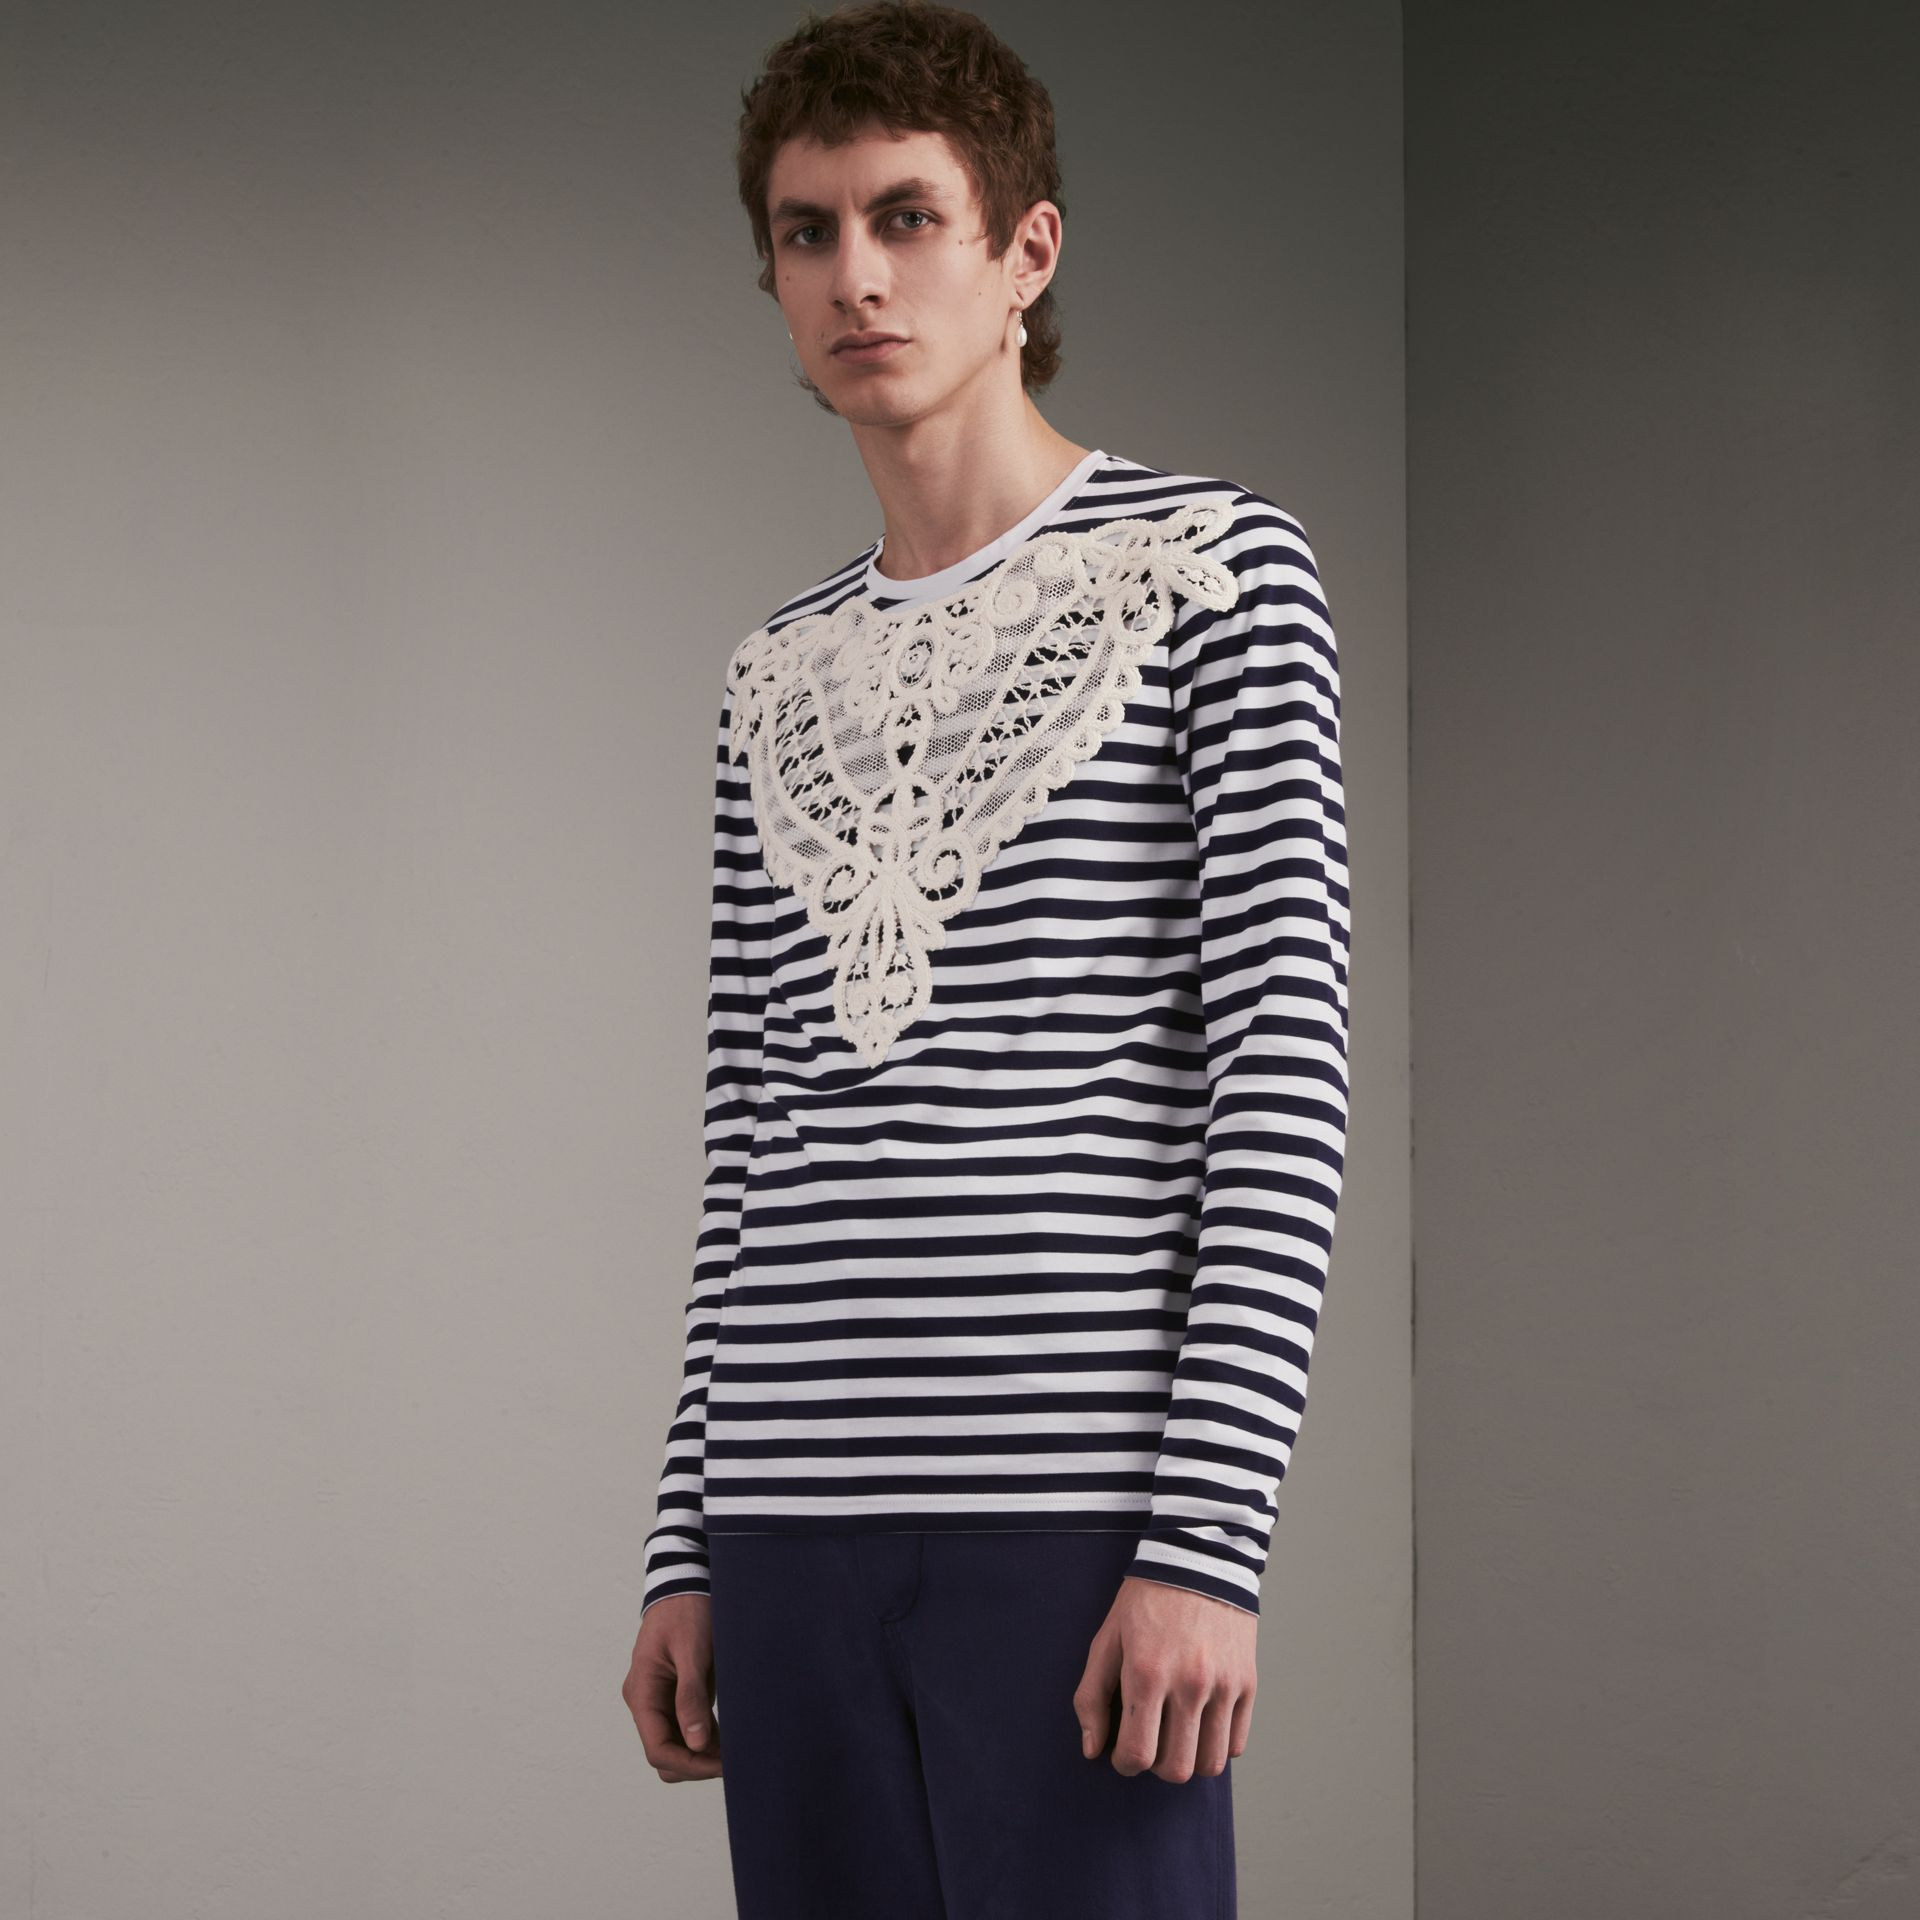 Unisex Breton Stripe Cotton Top with Lace Appliqué in Indigo - Men | Burberry Canada - gallery image 1